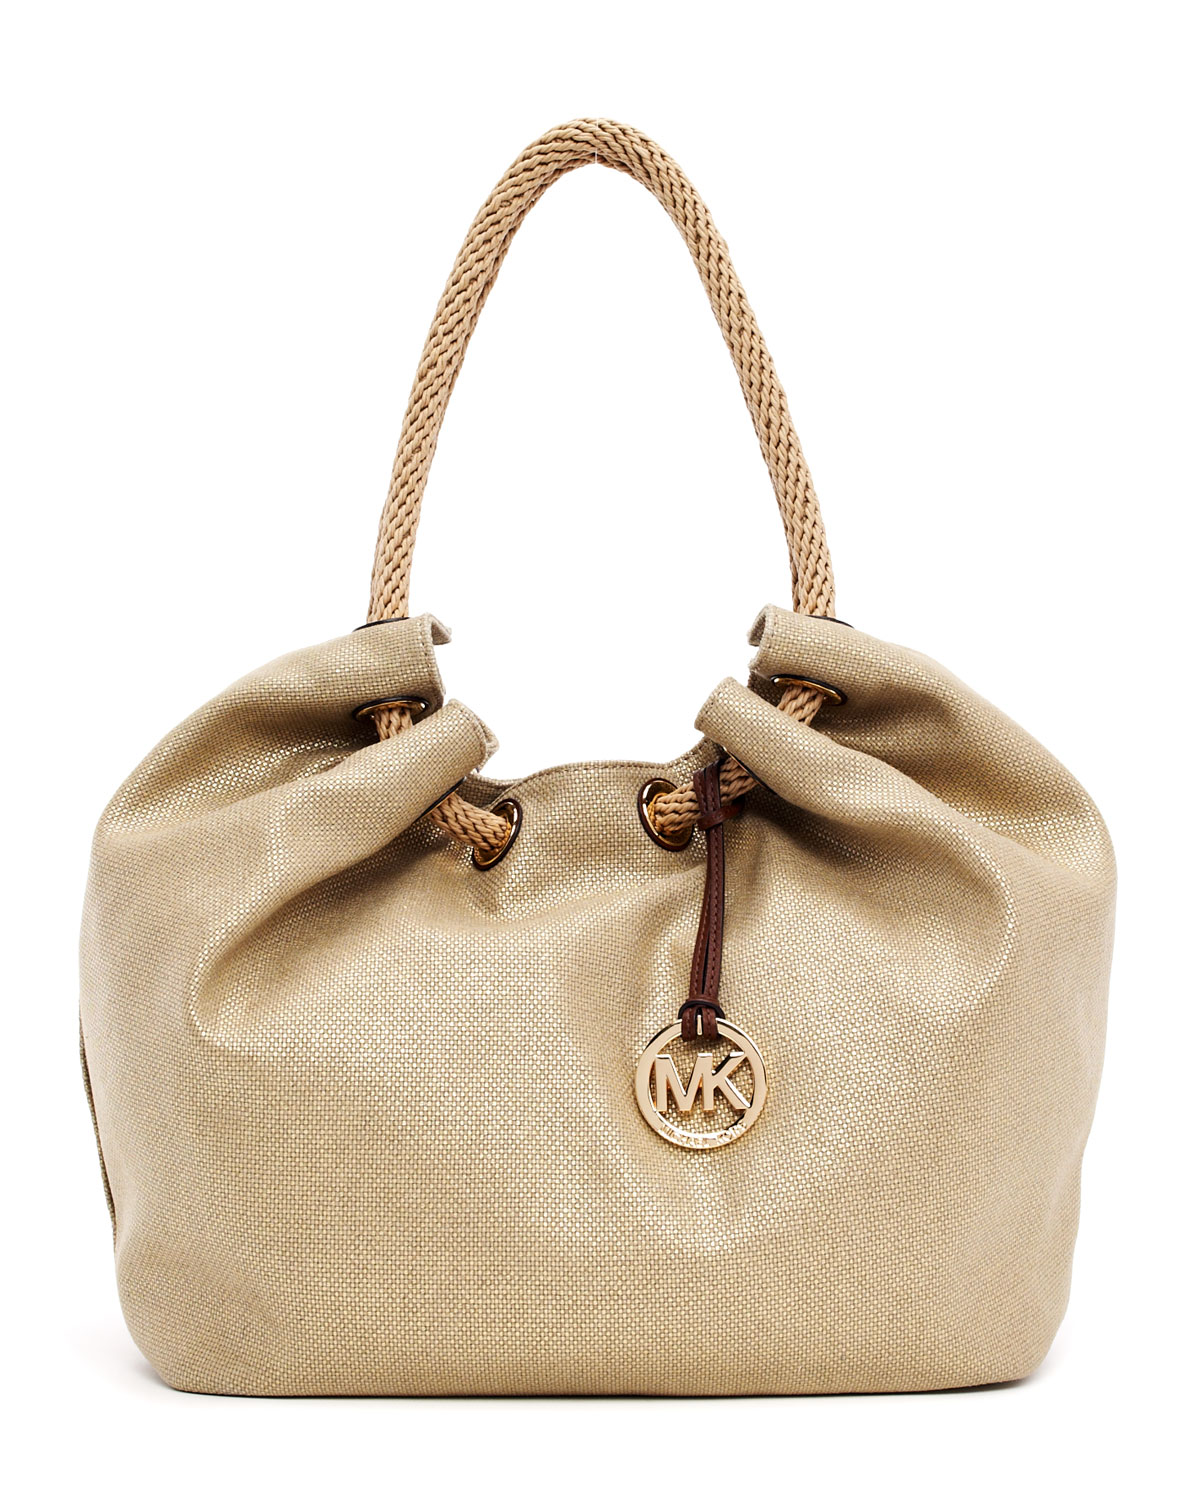 5309a13a7371ce Michael Kors Large Marina Metallic Canvas Shoulder Tote in Natural ...